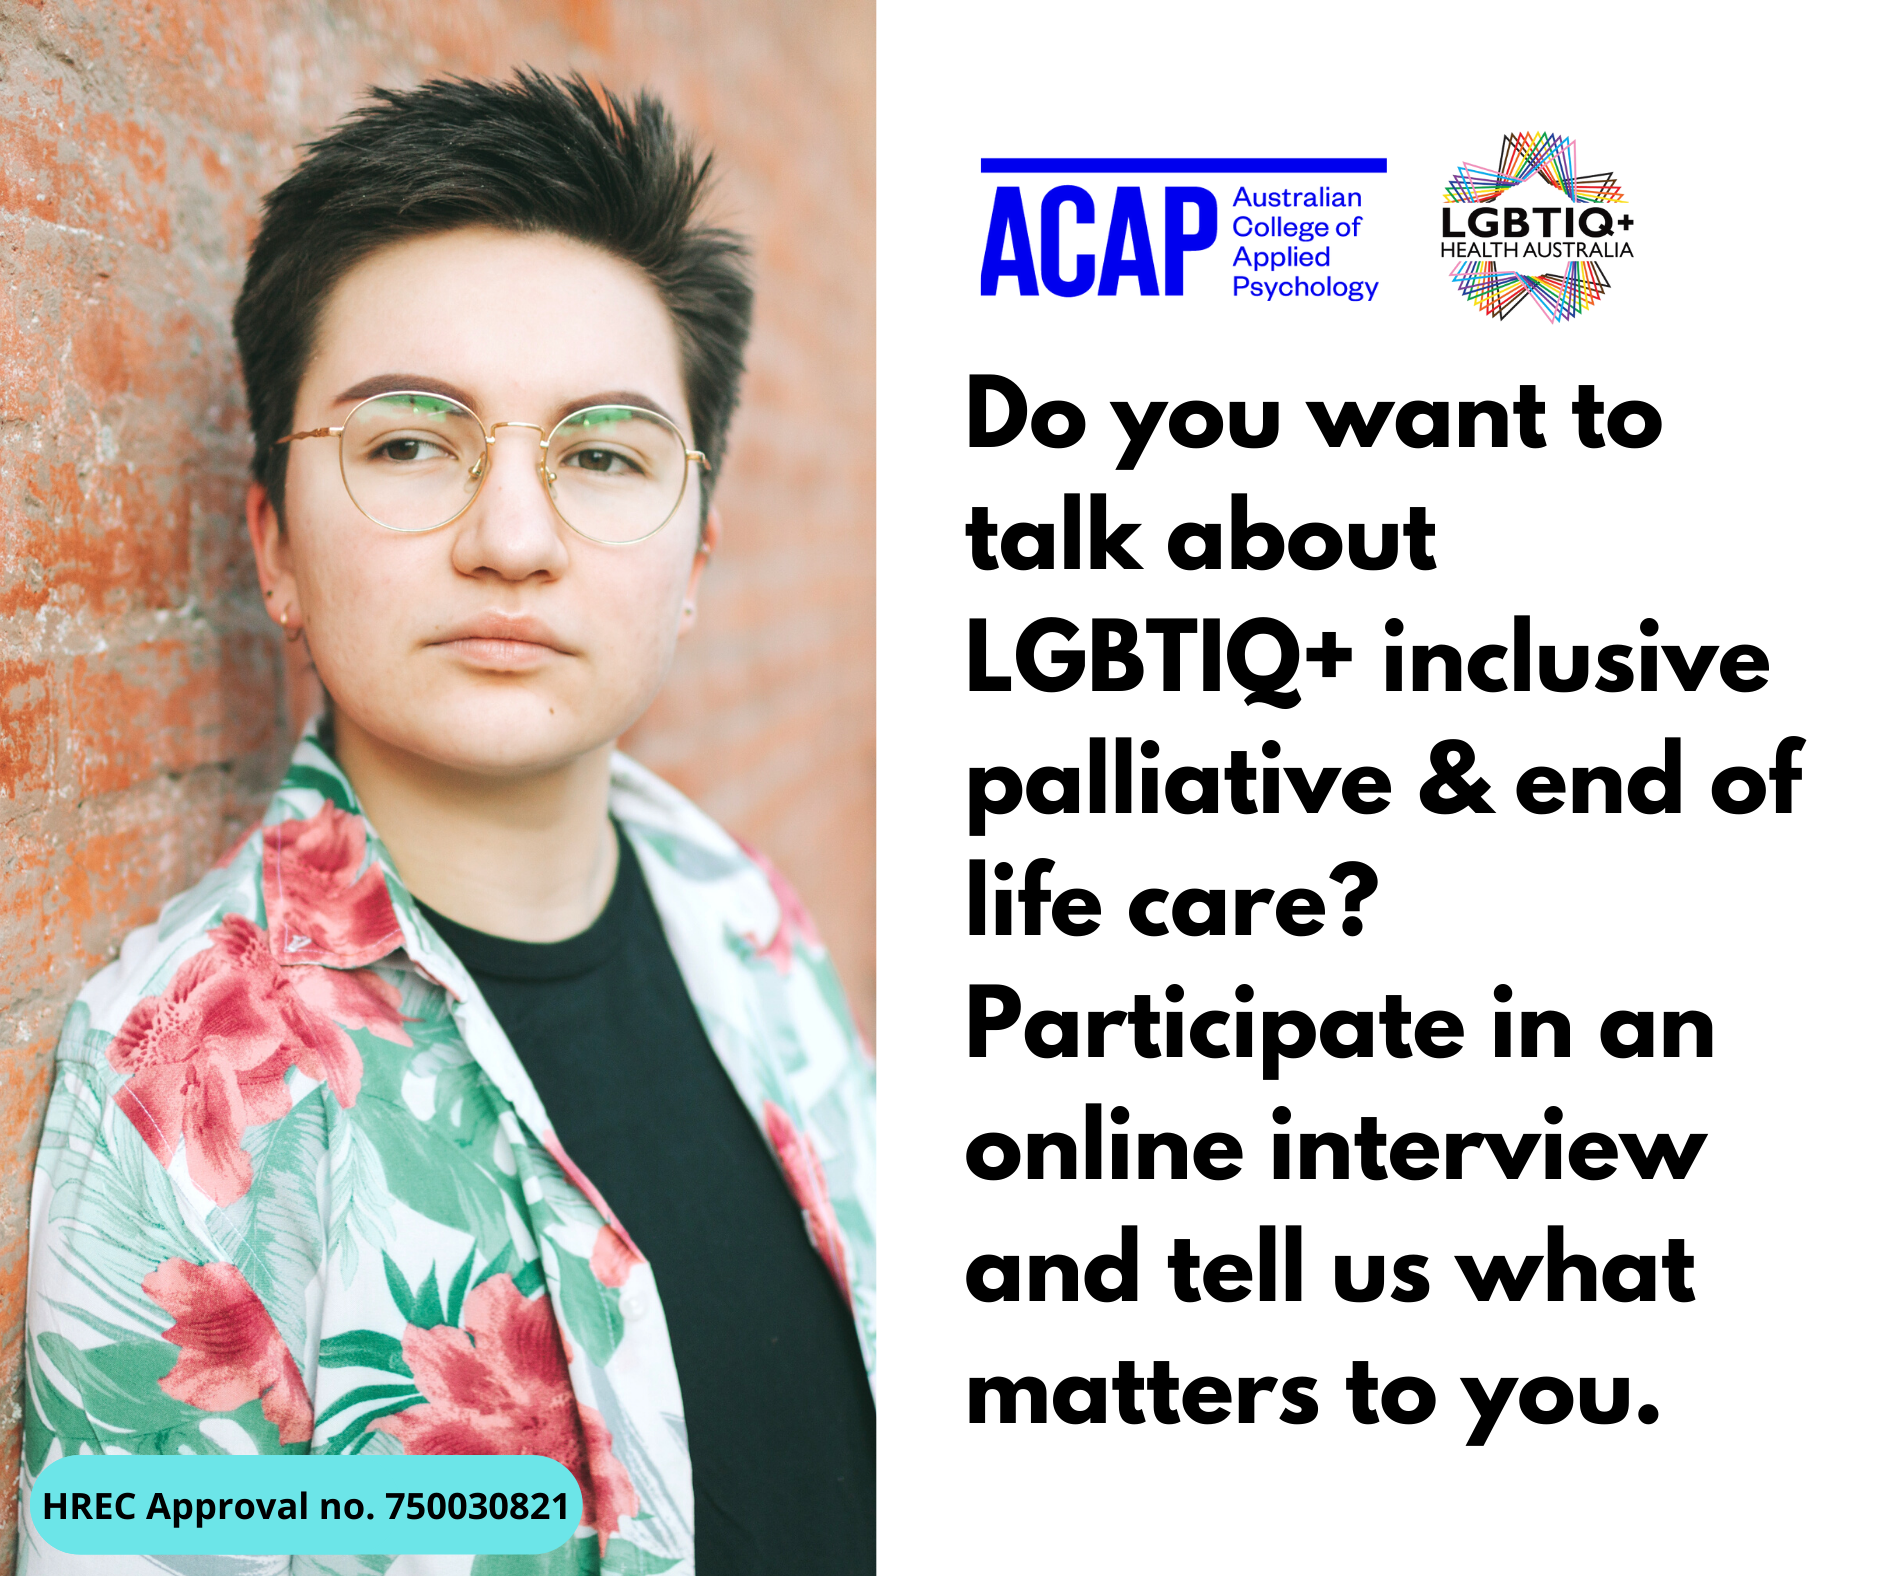 """Photo of person in their 20's leaning against a wall, wearing a Hawaiian shirt. Text reads: """"Do you want to talk about LGBTIQ+ inclusive palliative & end of life care? Participate in an online interview and tell us what matters to you. HREC Approval number: 750030821"""